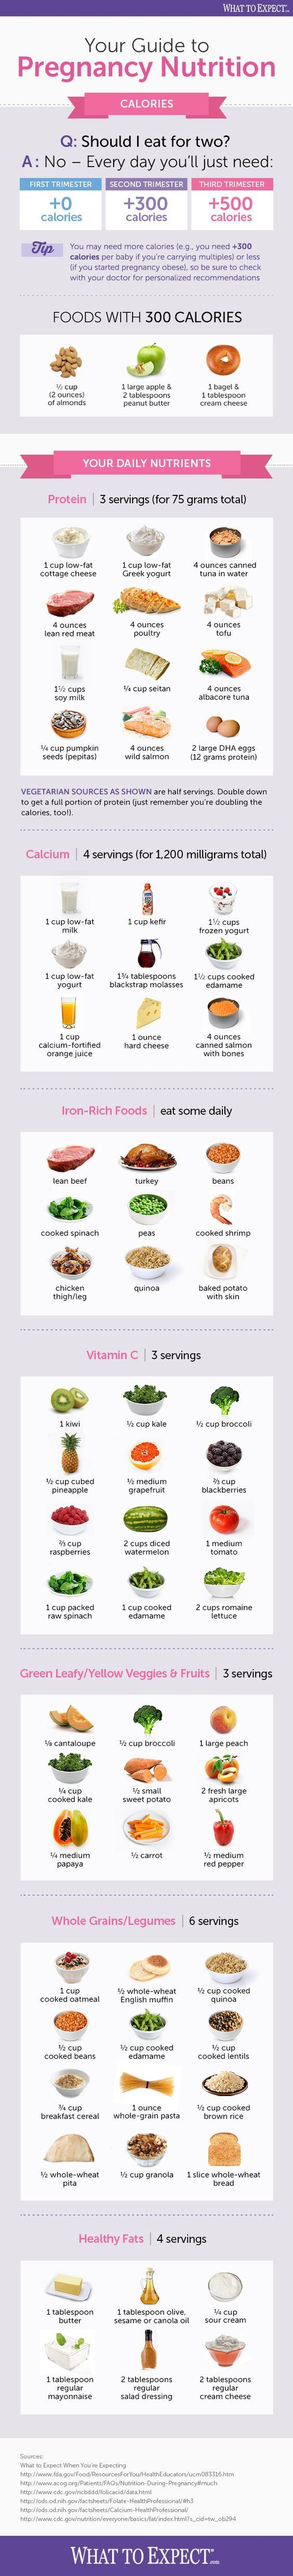 Eating Healthy During Pregnancy